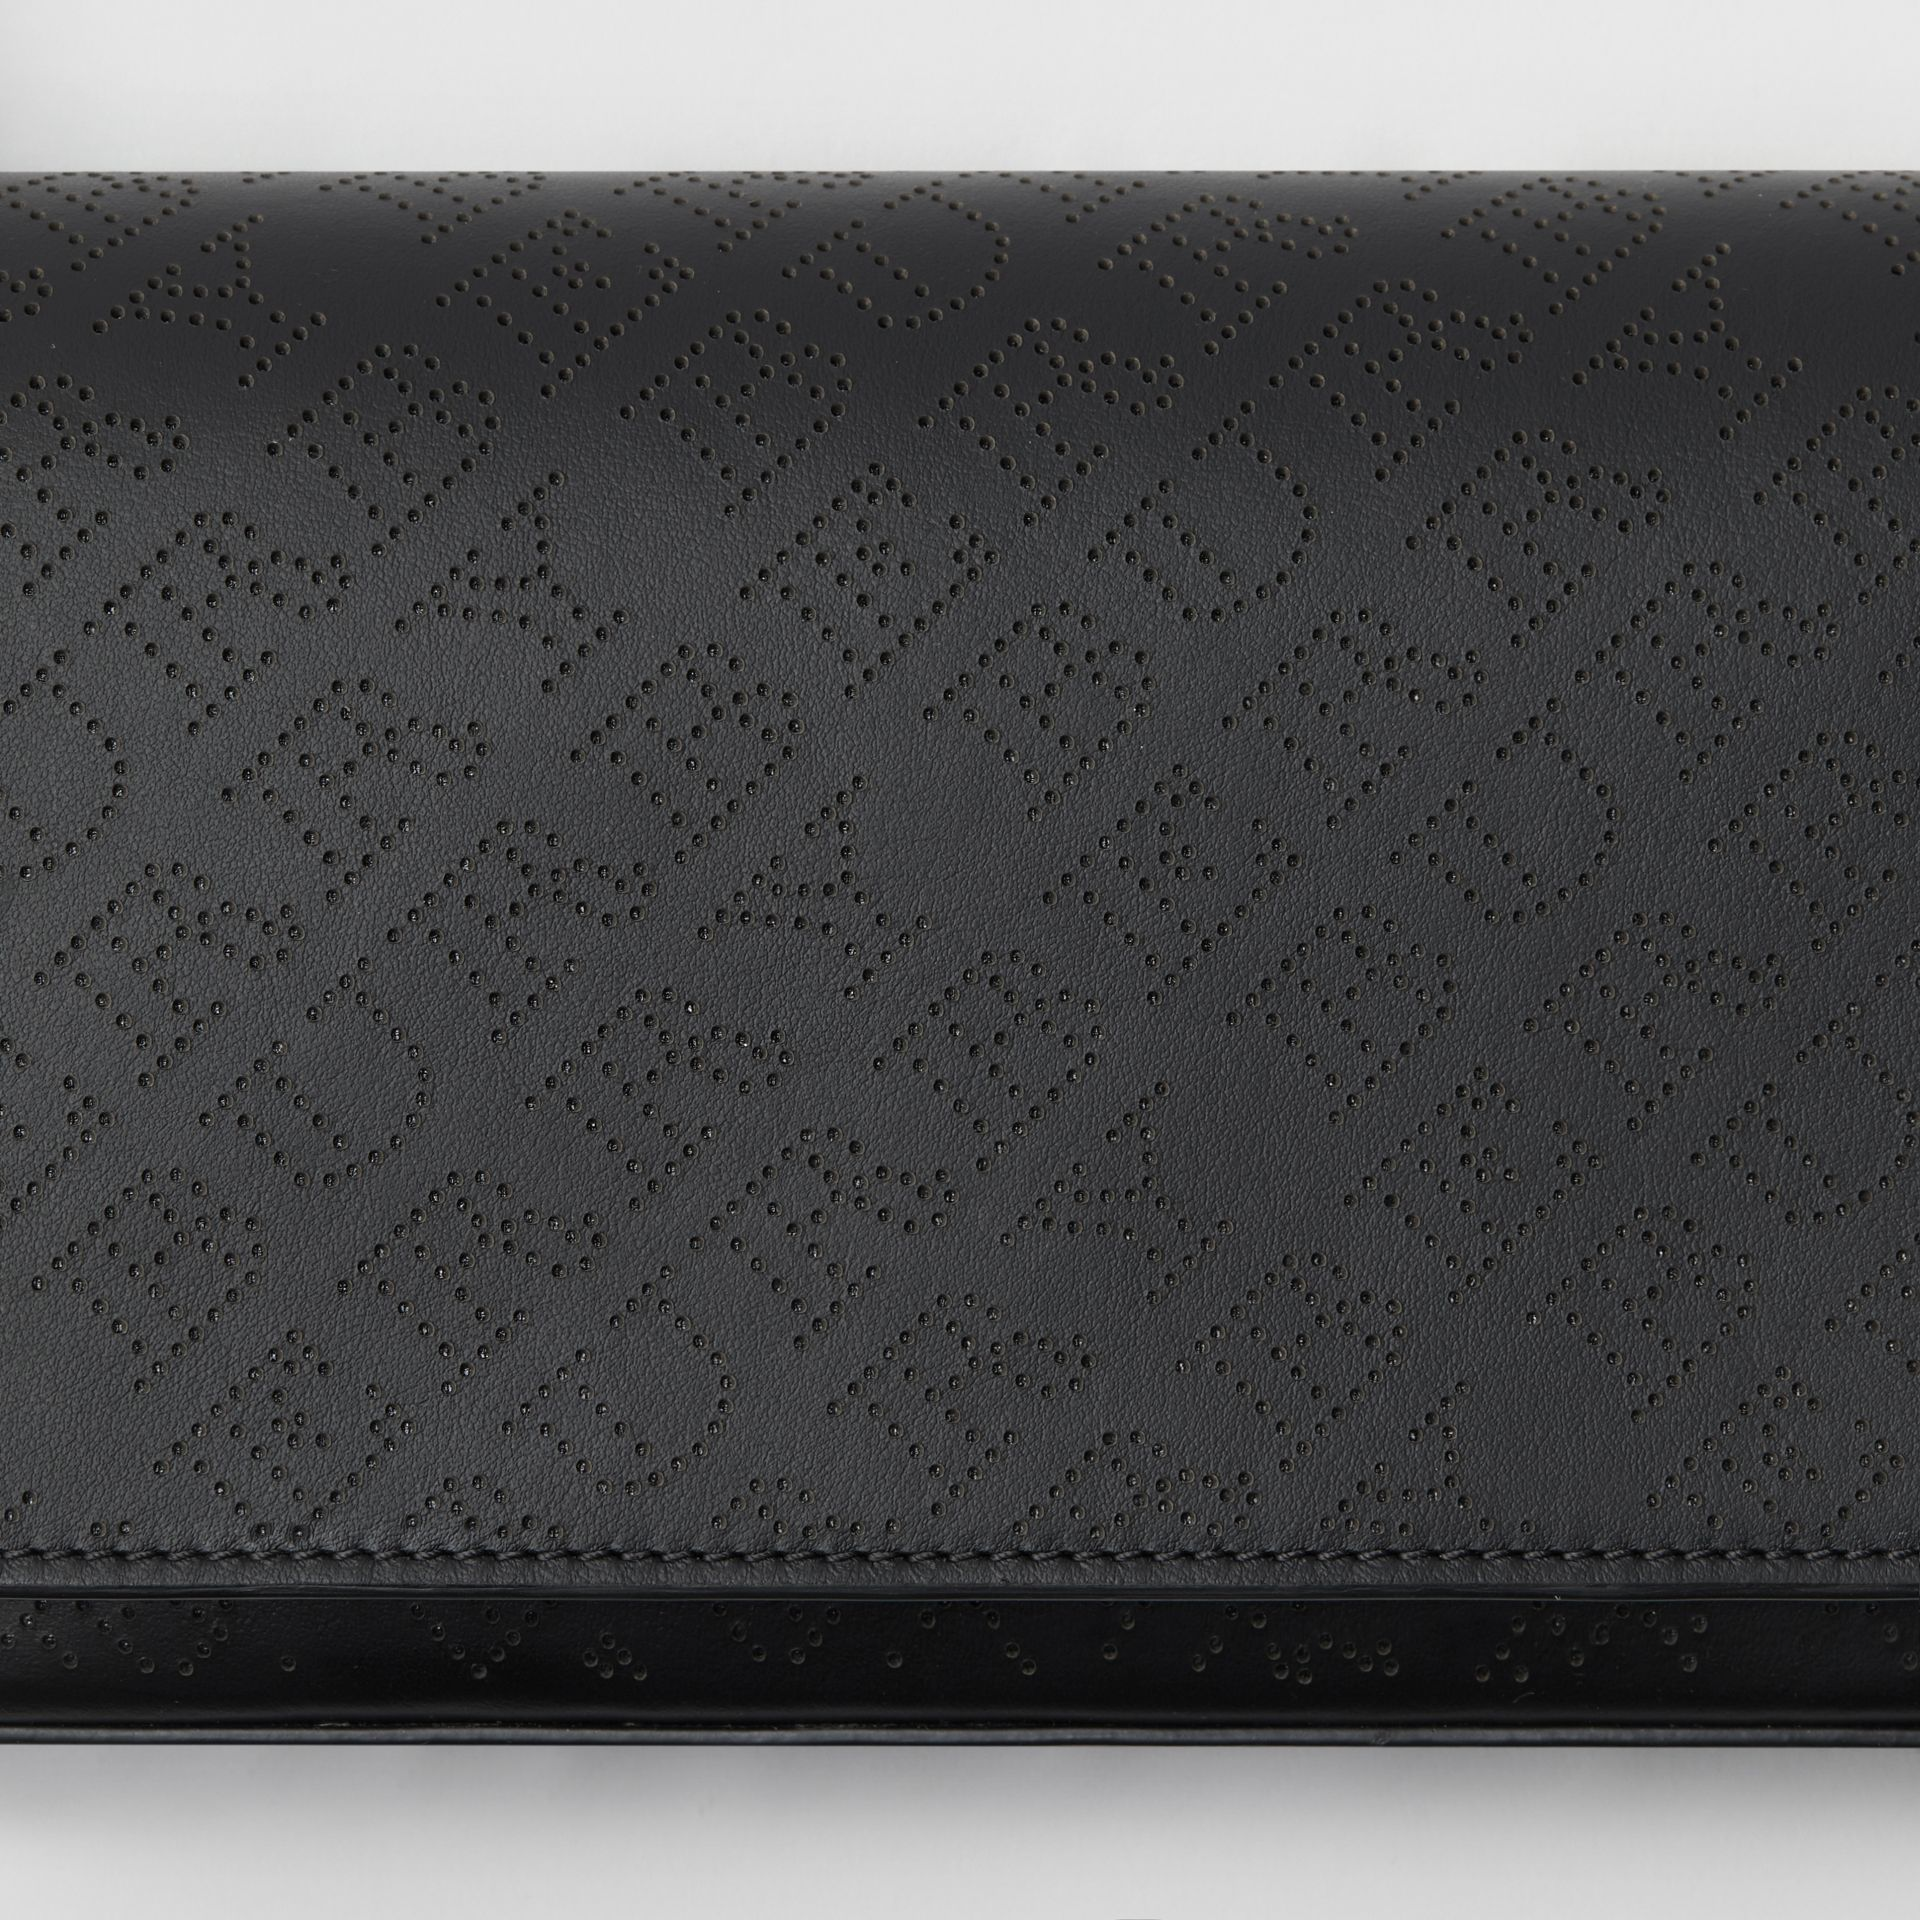 Perforated Logo Leather Wallet with Detachable Strap in Black - Women | Burberry United States - gallery image 1